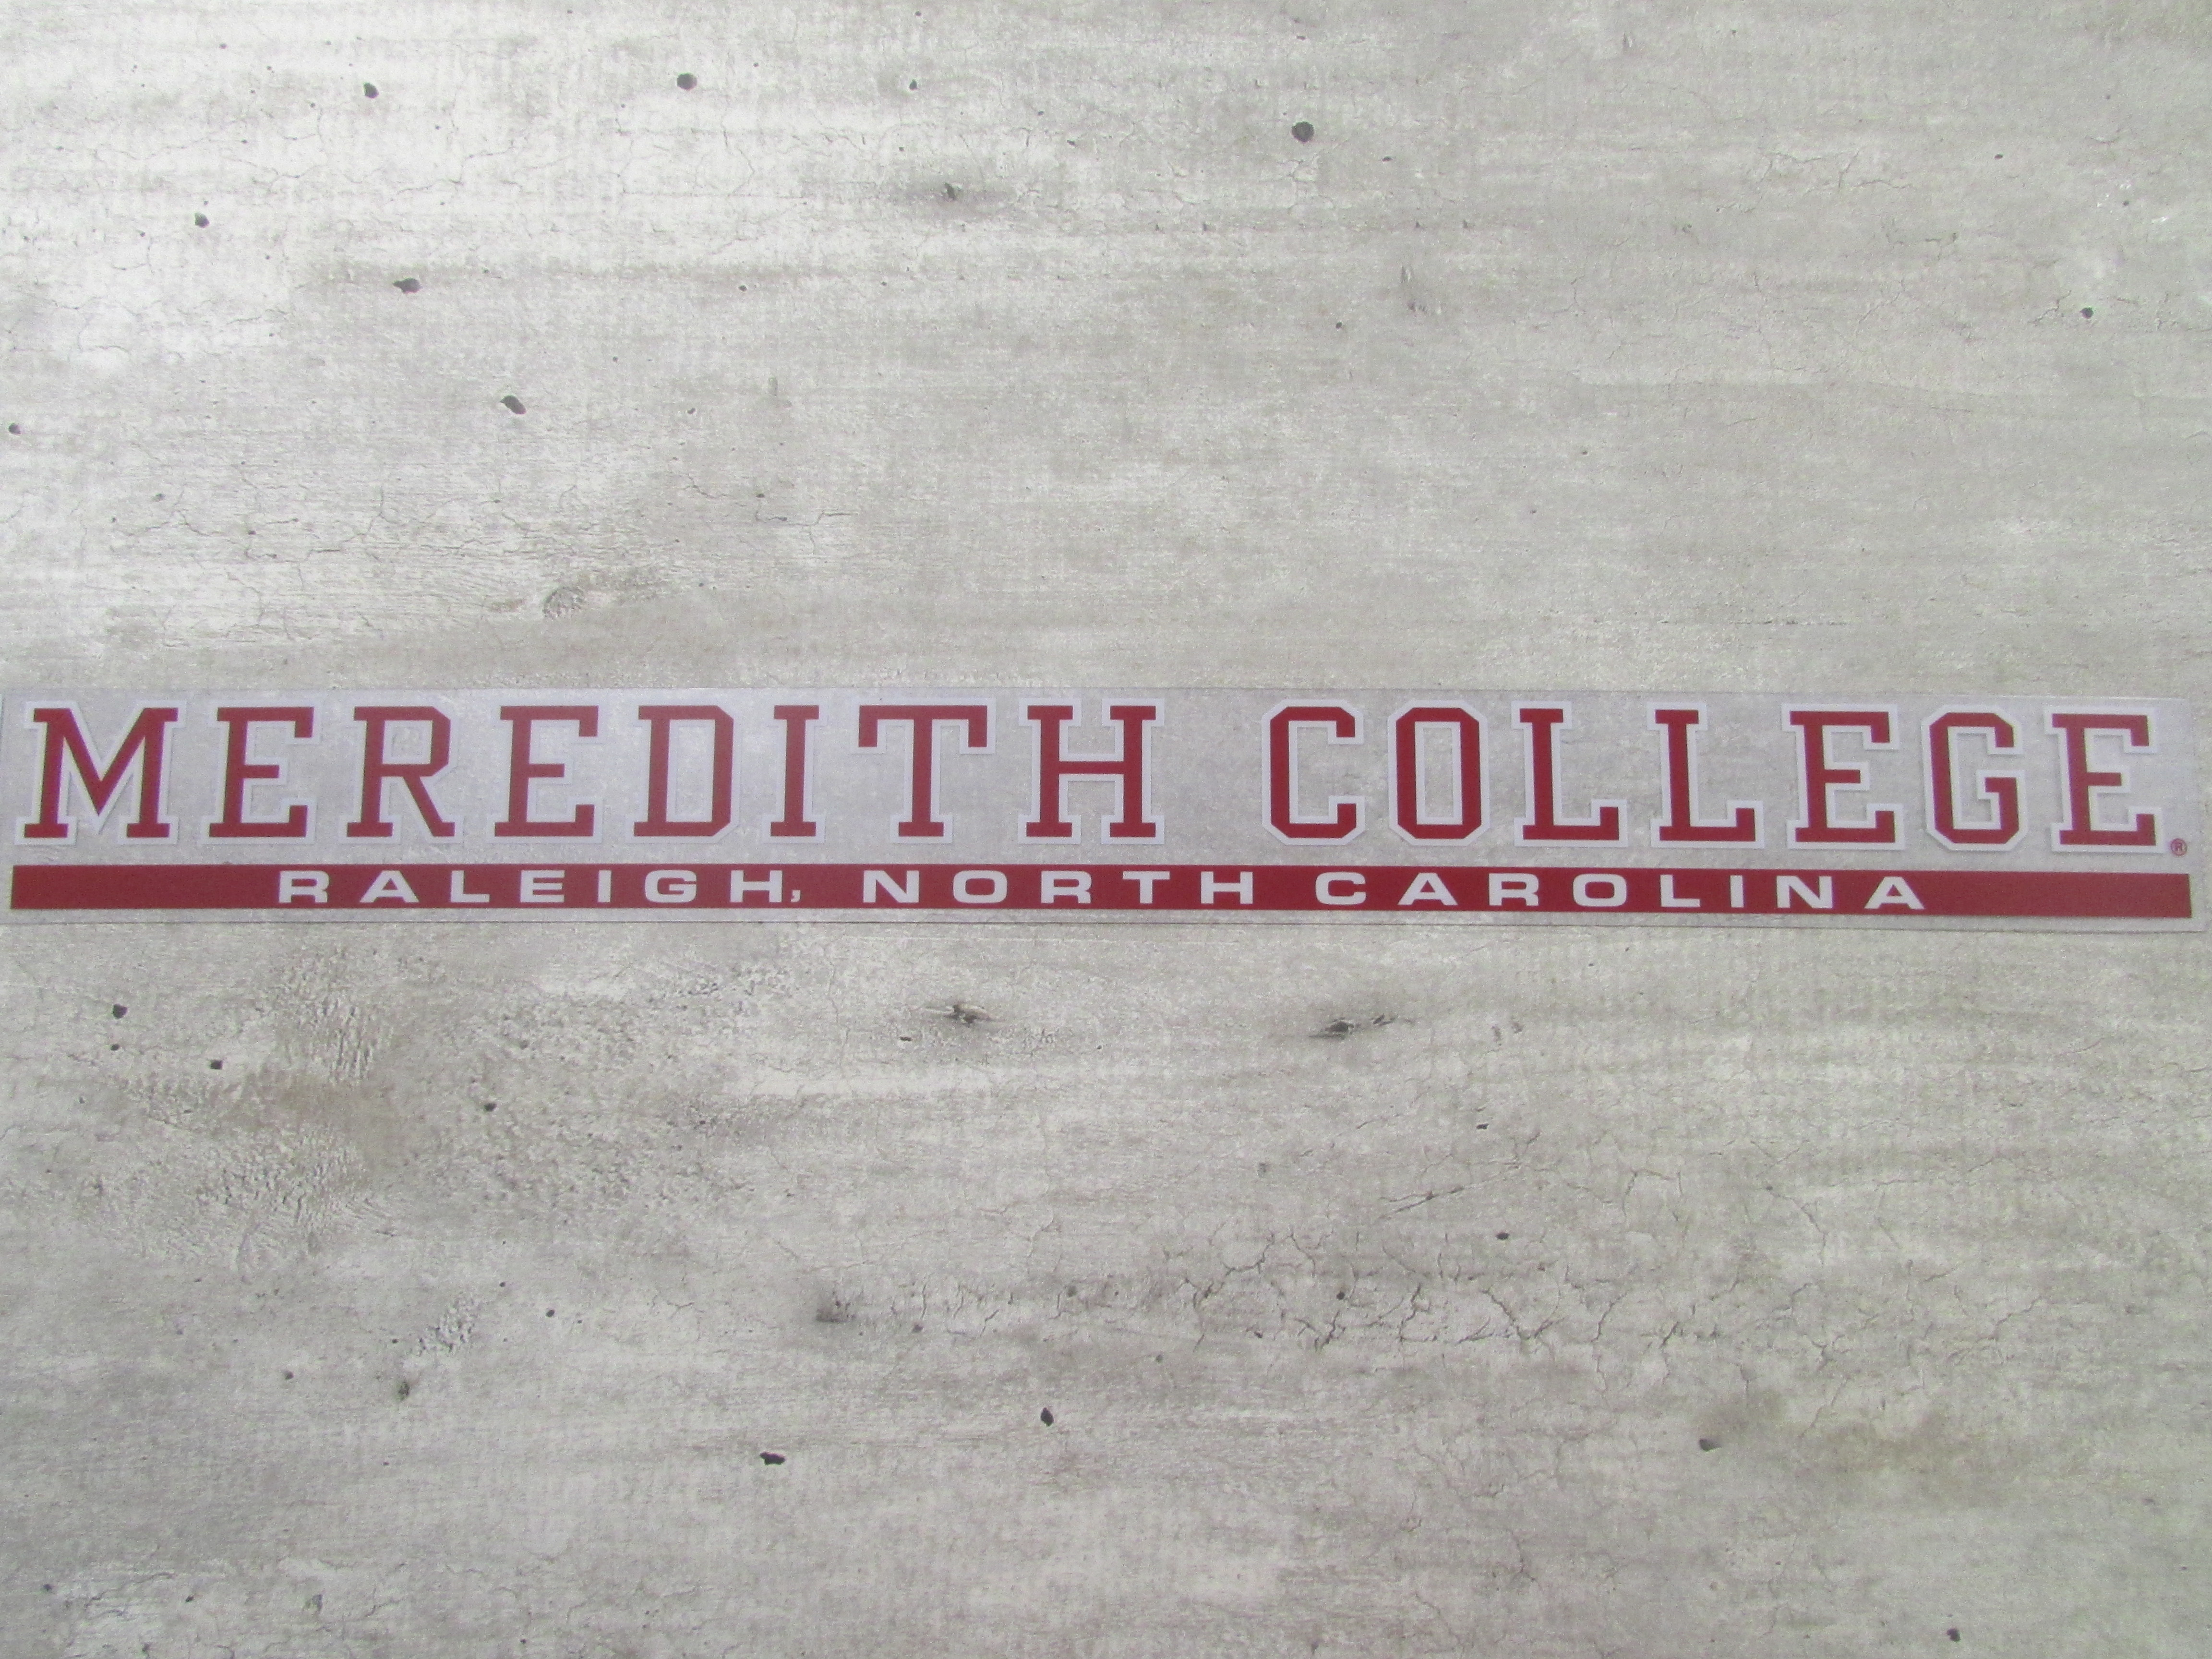 Image for the Auto Cling Long Meredith College Raleigh North Carolina product